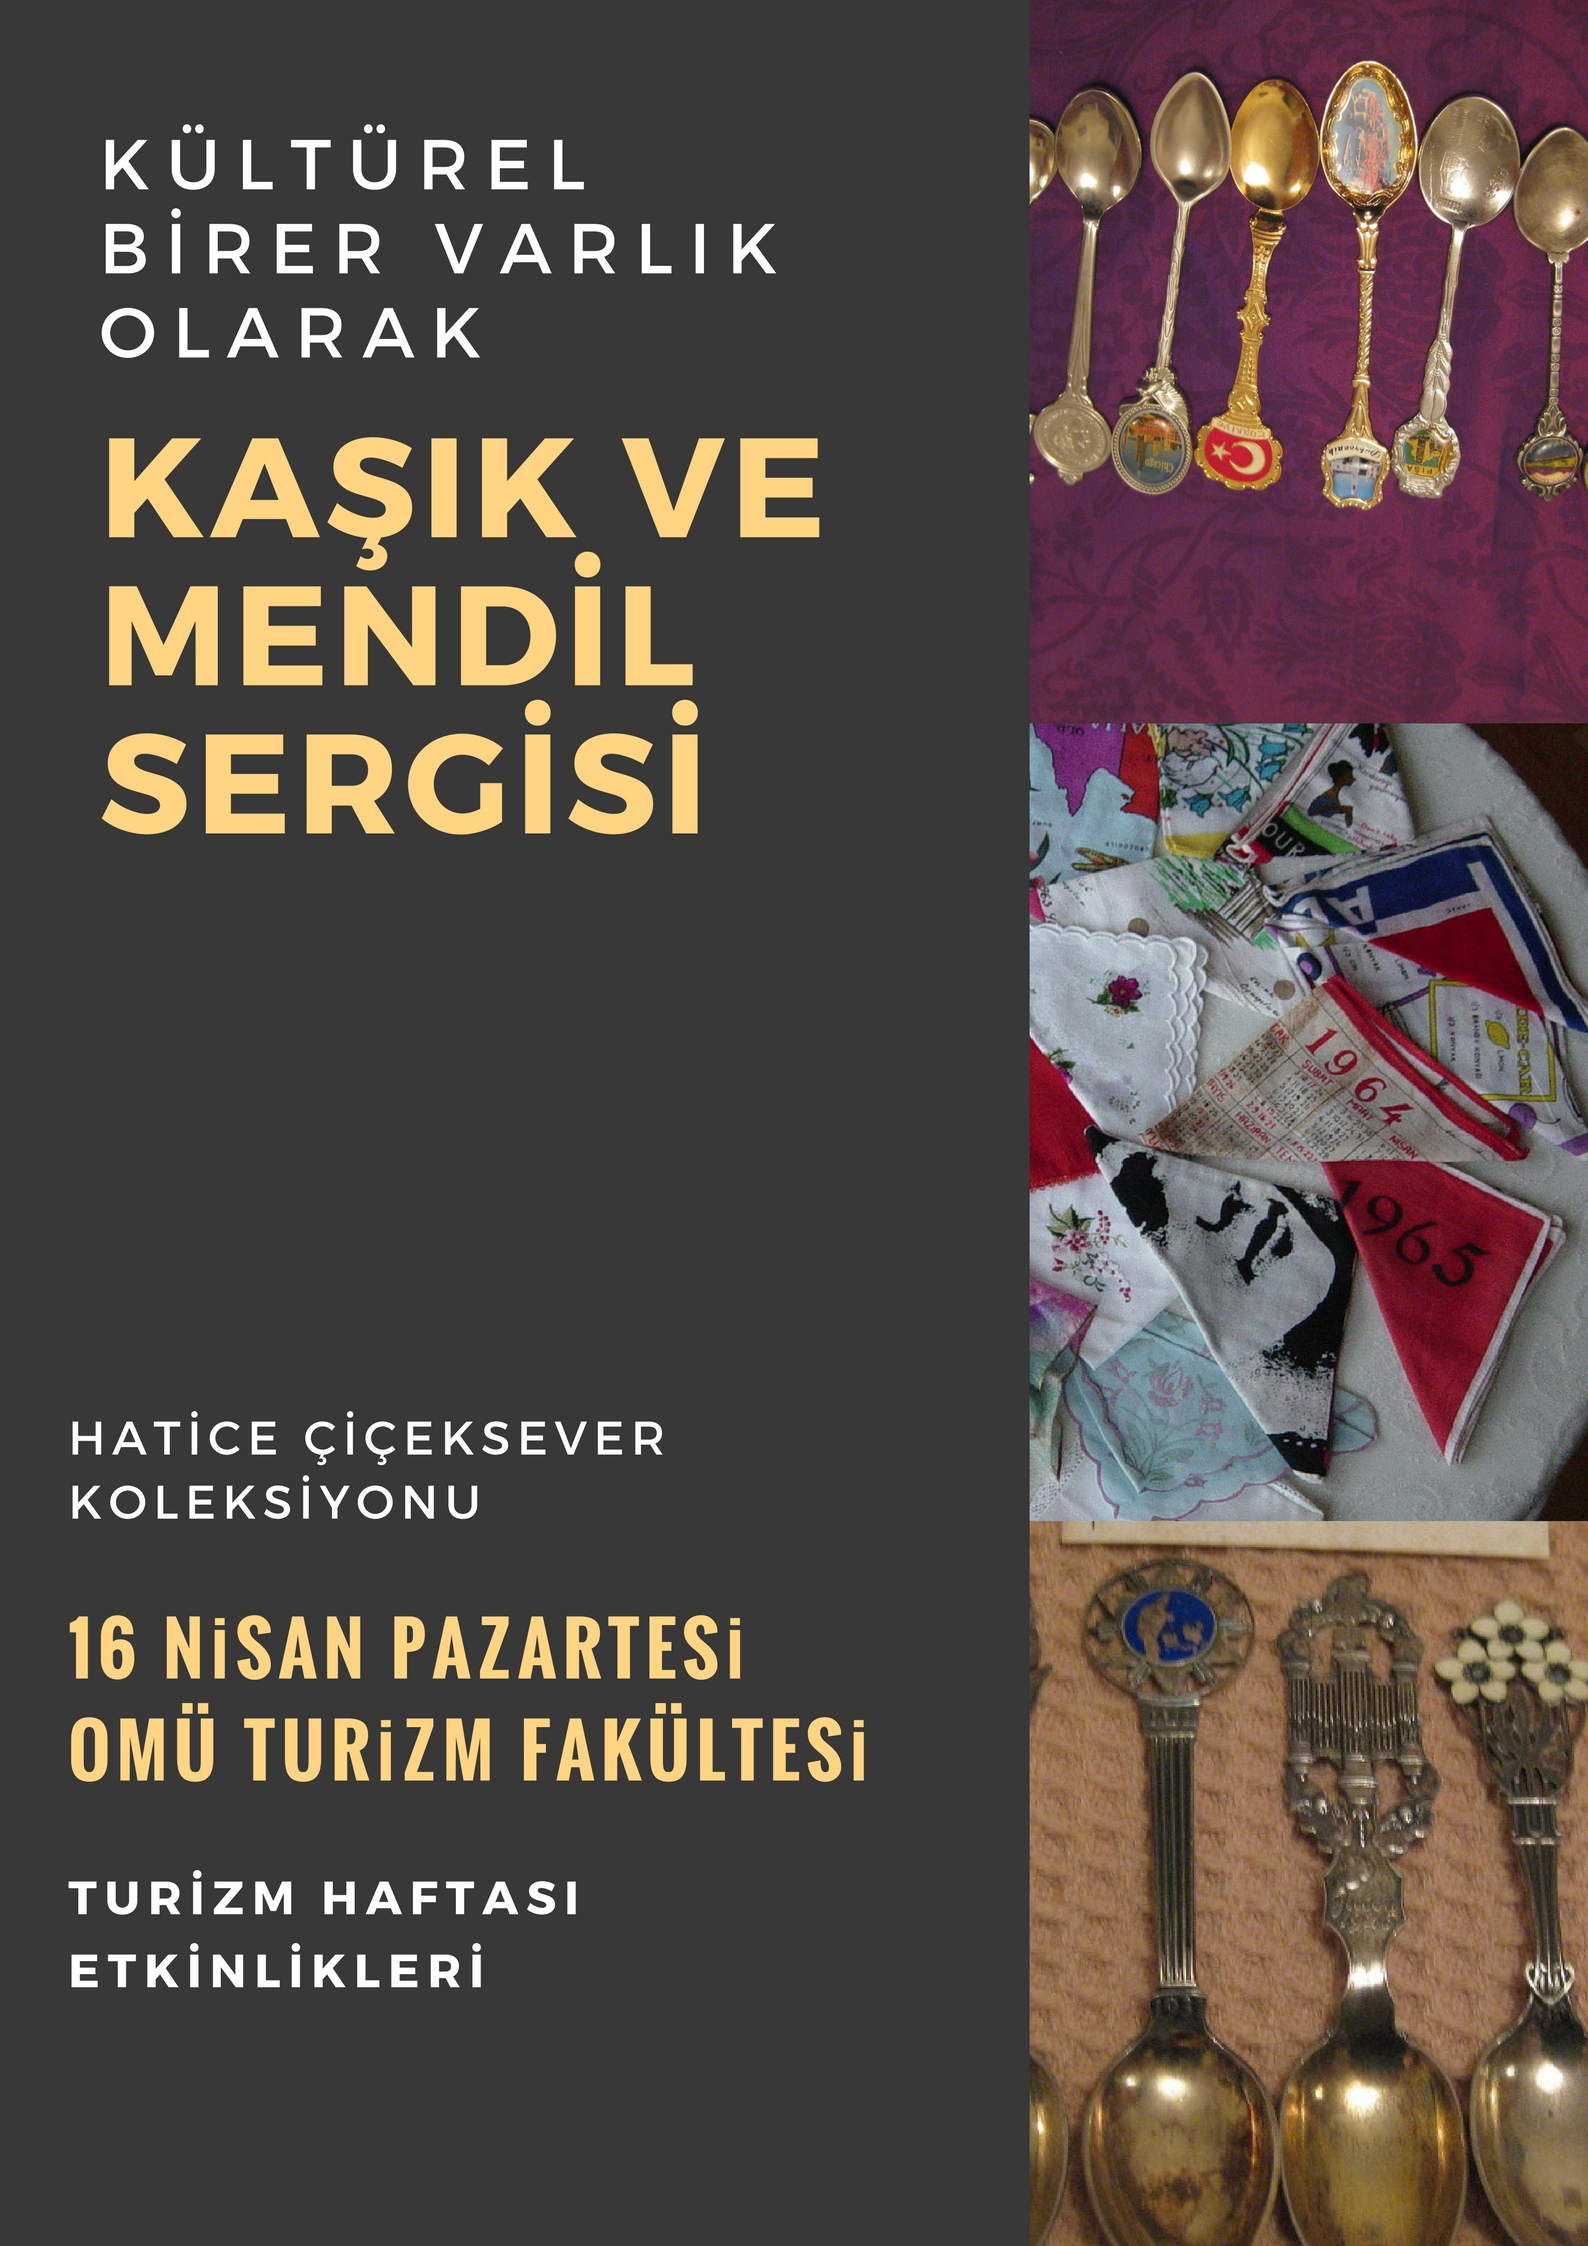 http://www.omu.edu.tr/sites/default/files/kasik_ve_mendil_poster_0.jpg